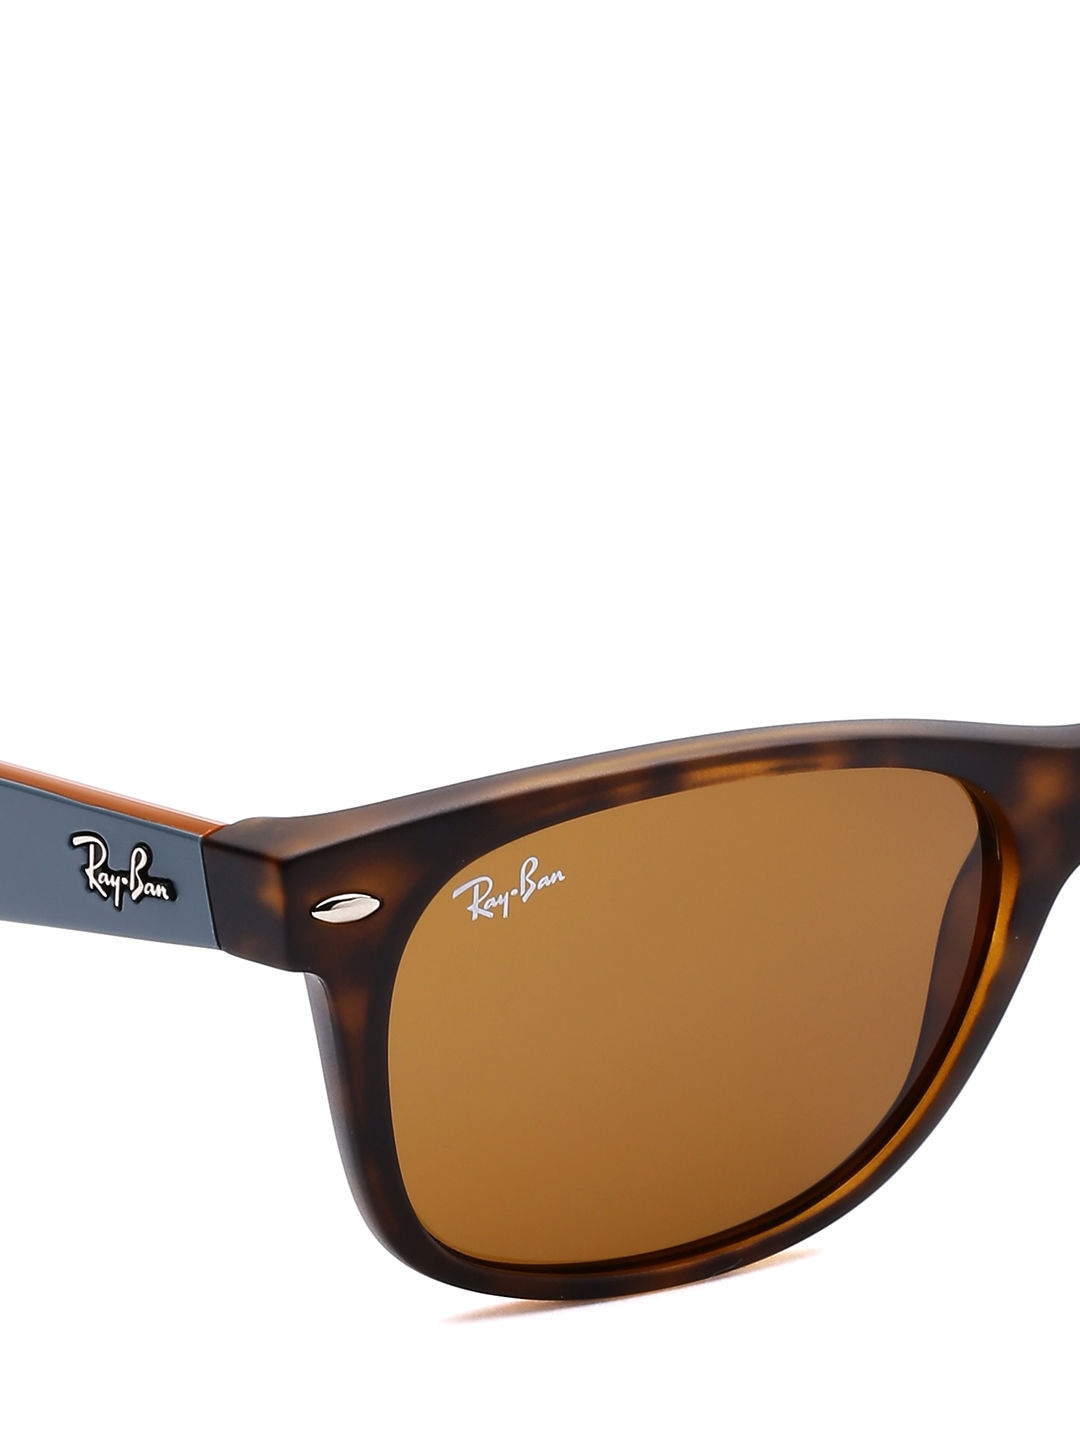 Buy Sunglasses Online Ban Ray